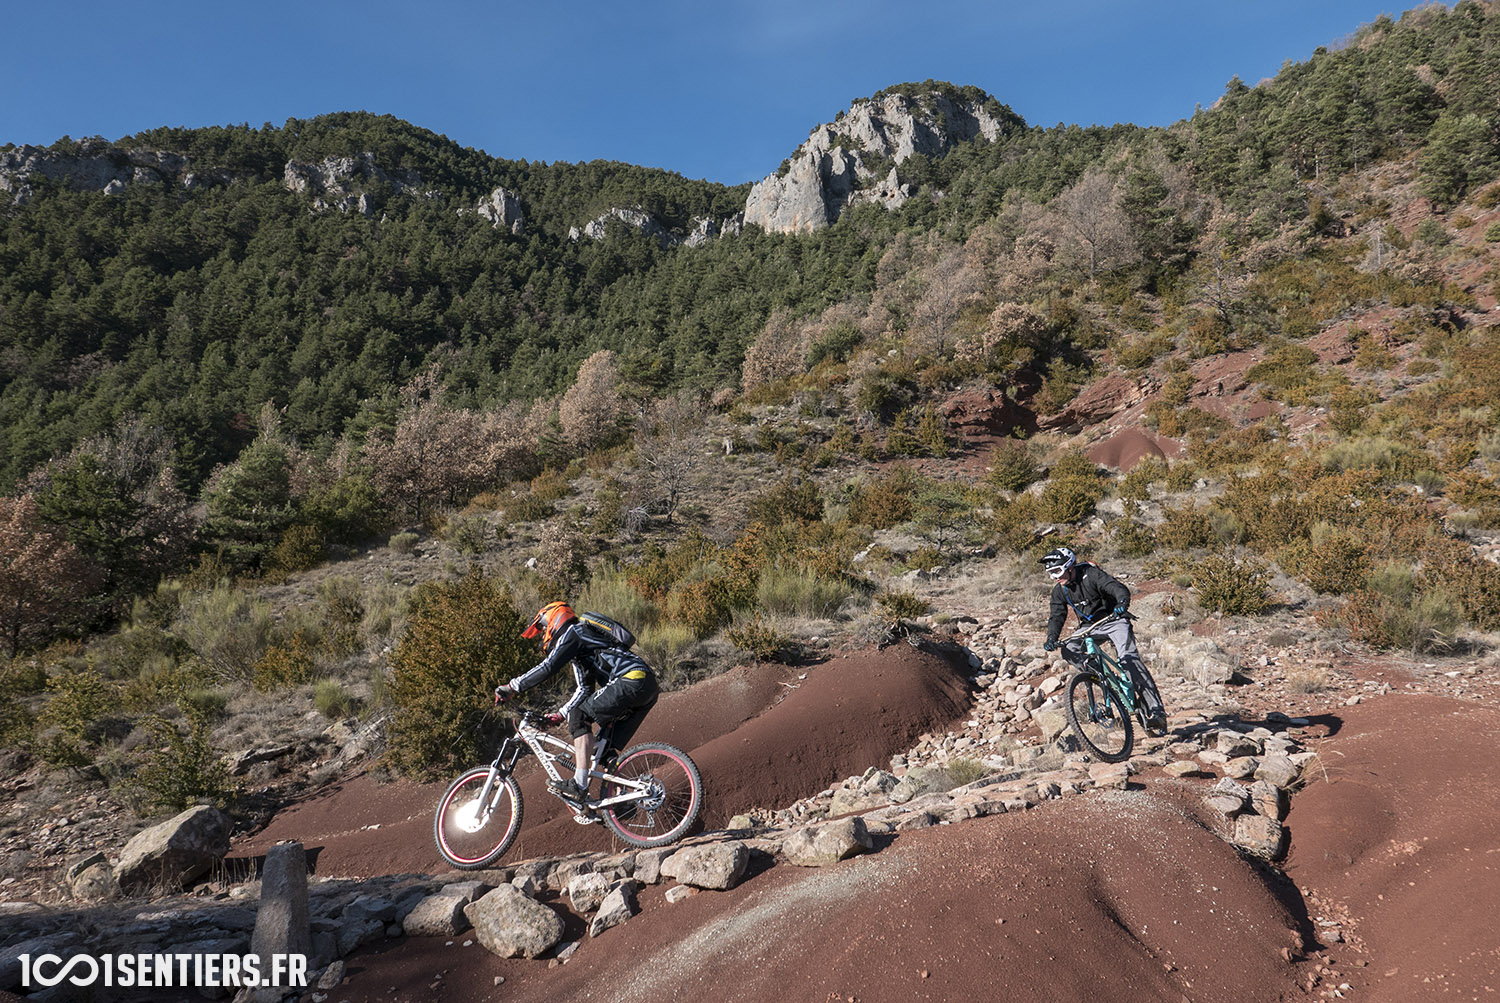 1001sentiers-session-enduro-alpes-maritimes-vtt-p1100289